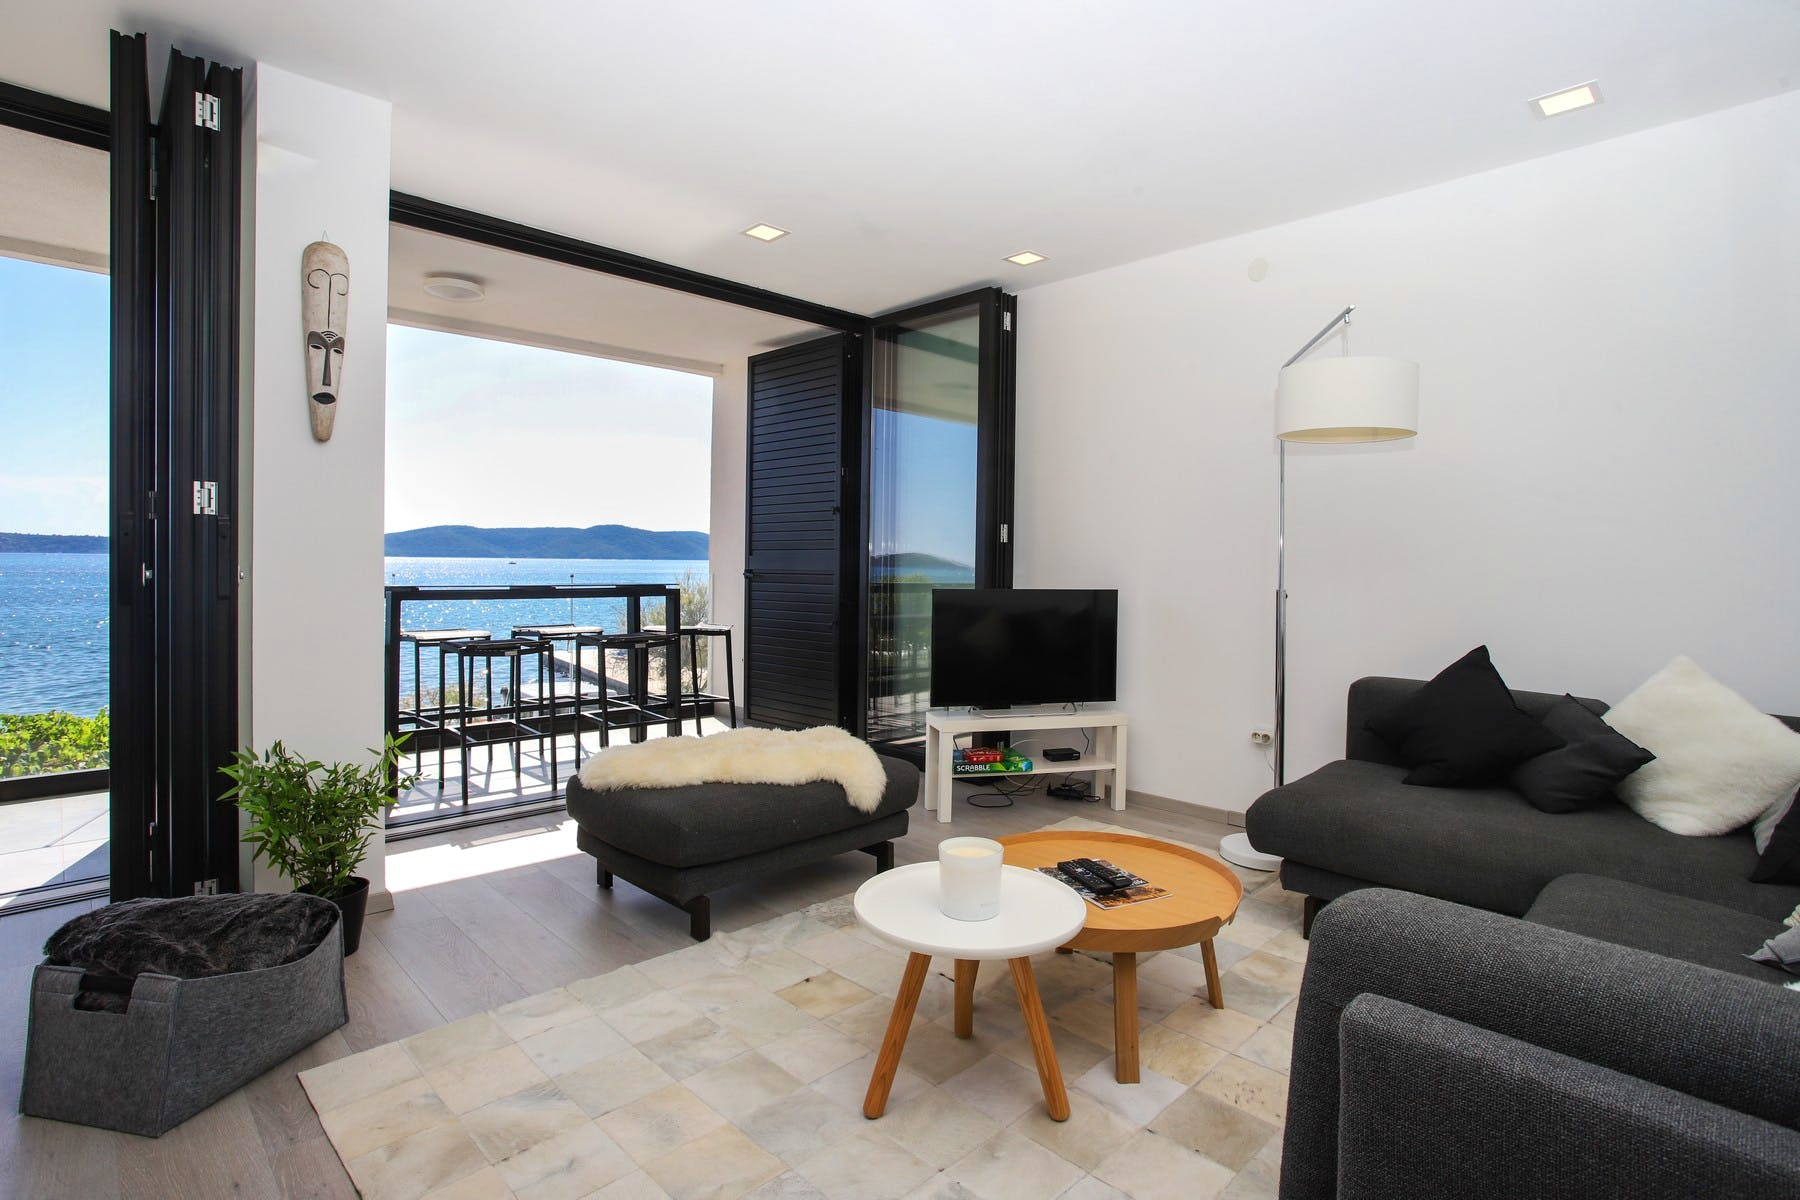 Living area with access to the balcony with sea view